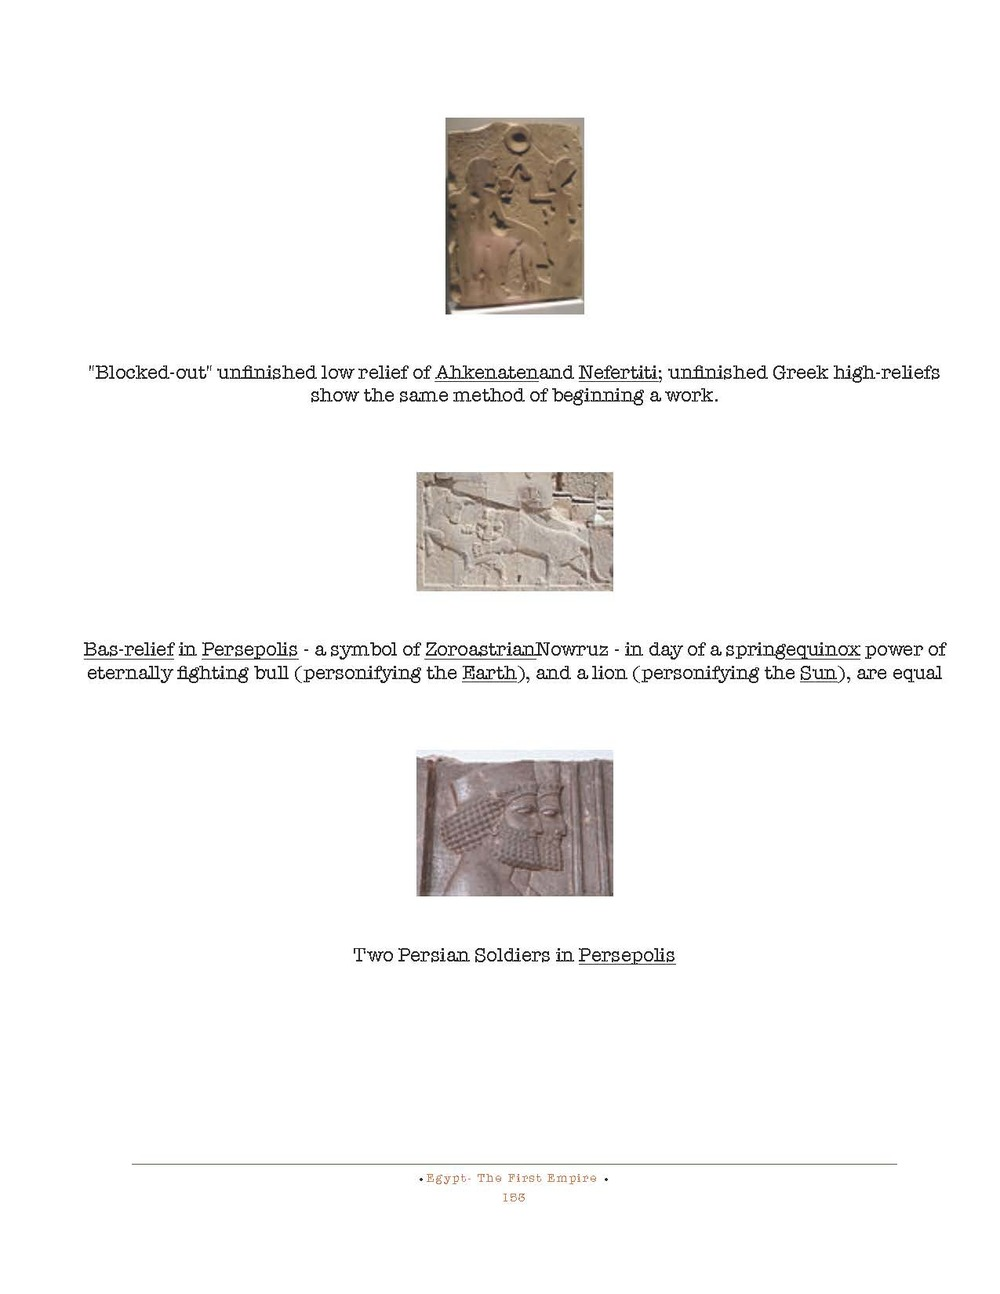 HOCE- Egypt  (First Empire) Notes_Page_153.jpg